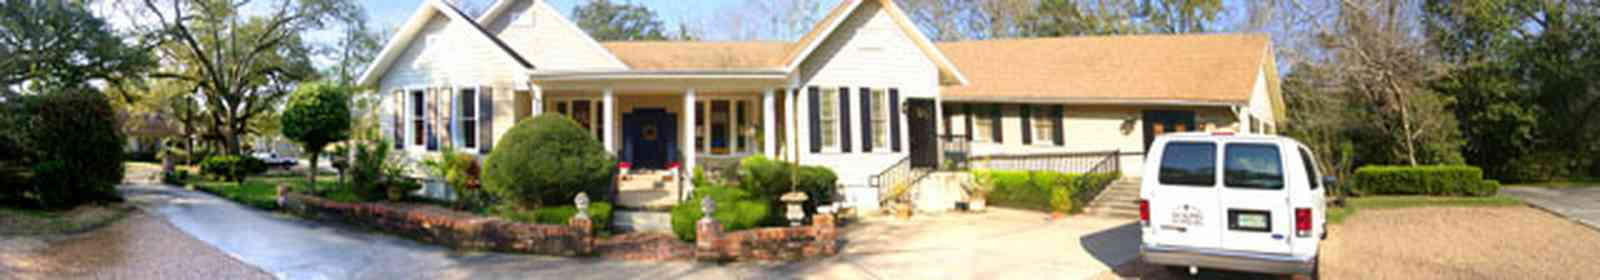 East-Hill:-McAlpin-Shop_03.jpg:  antique shop, colonial style house, dormers, shutters, clapboard cottage,